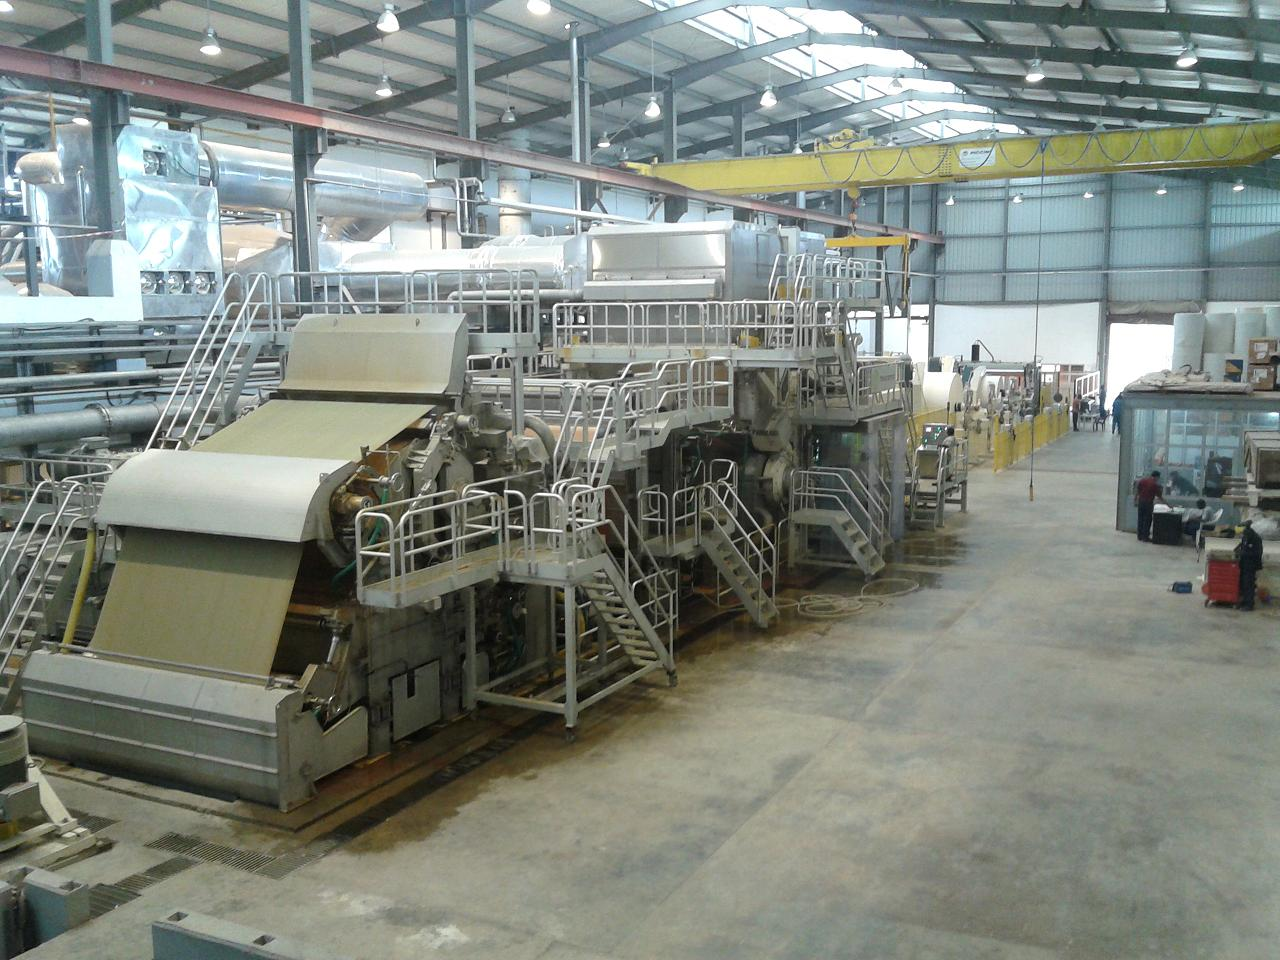 The complete tissue production line installed at the Bel Papyrus site in Lagos, Nigeria